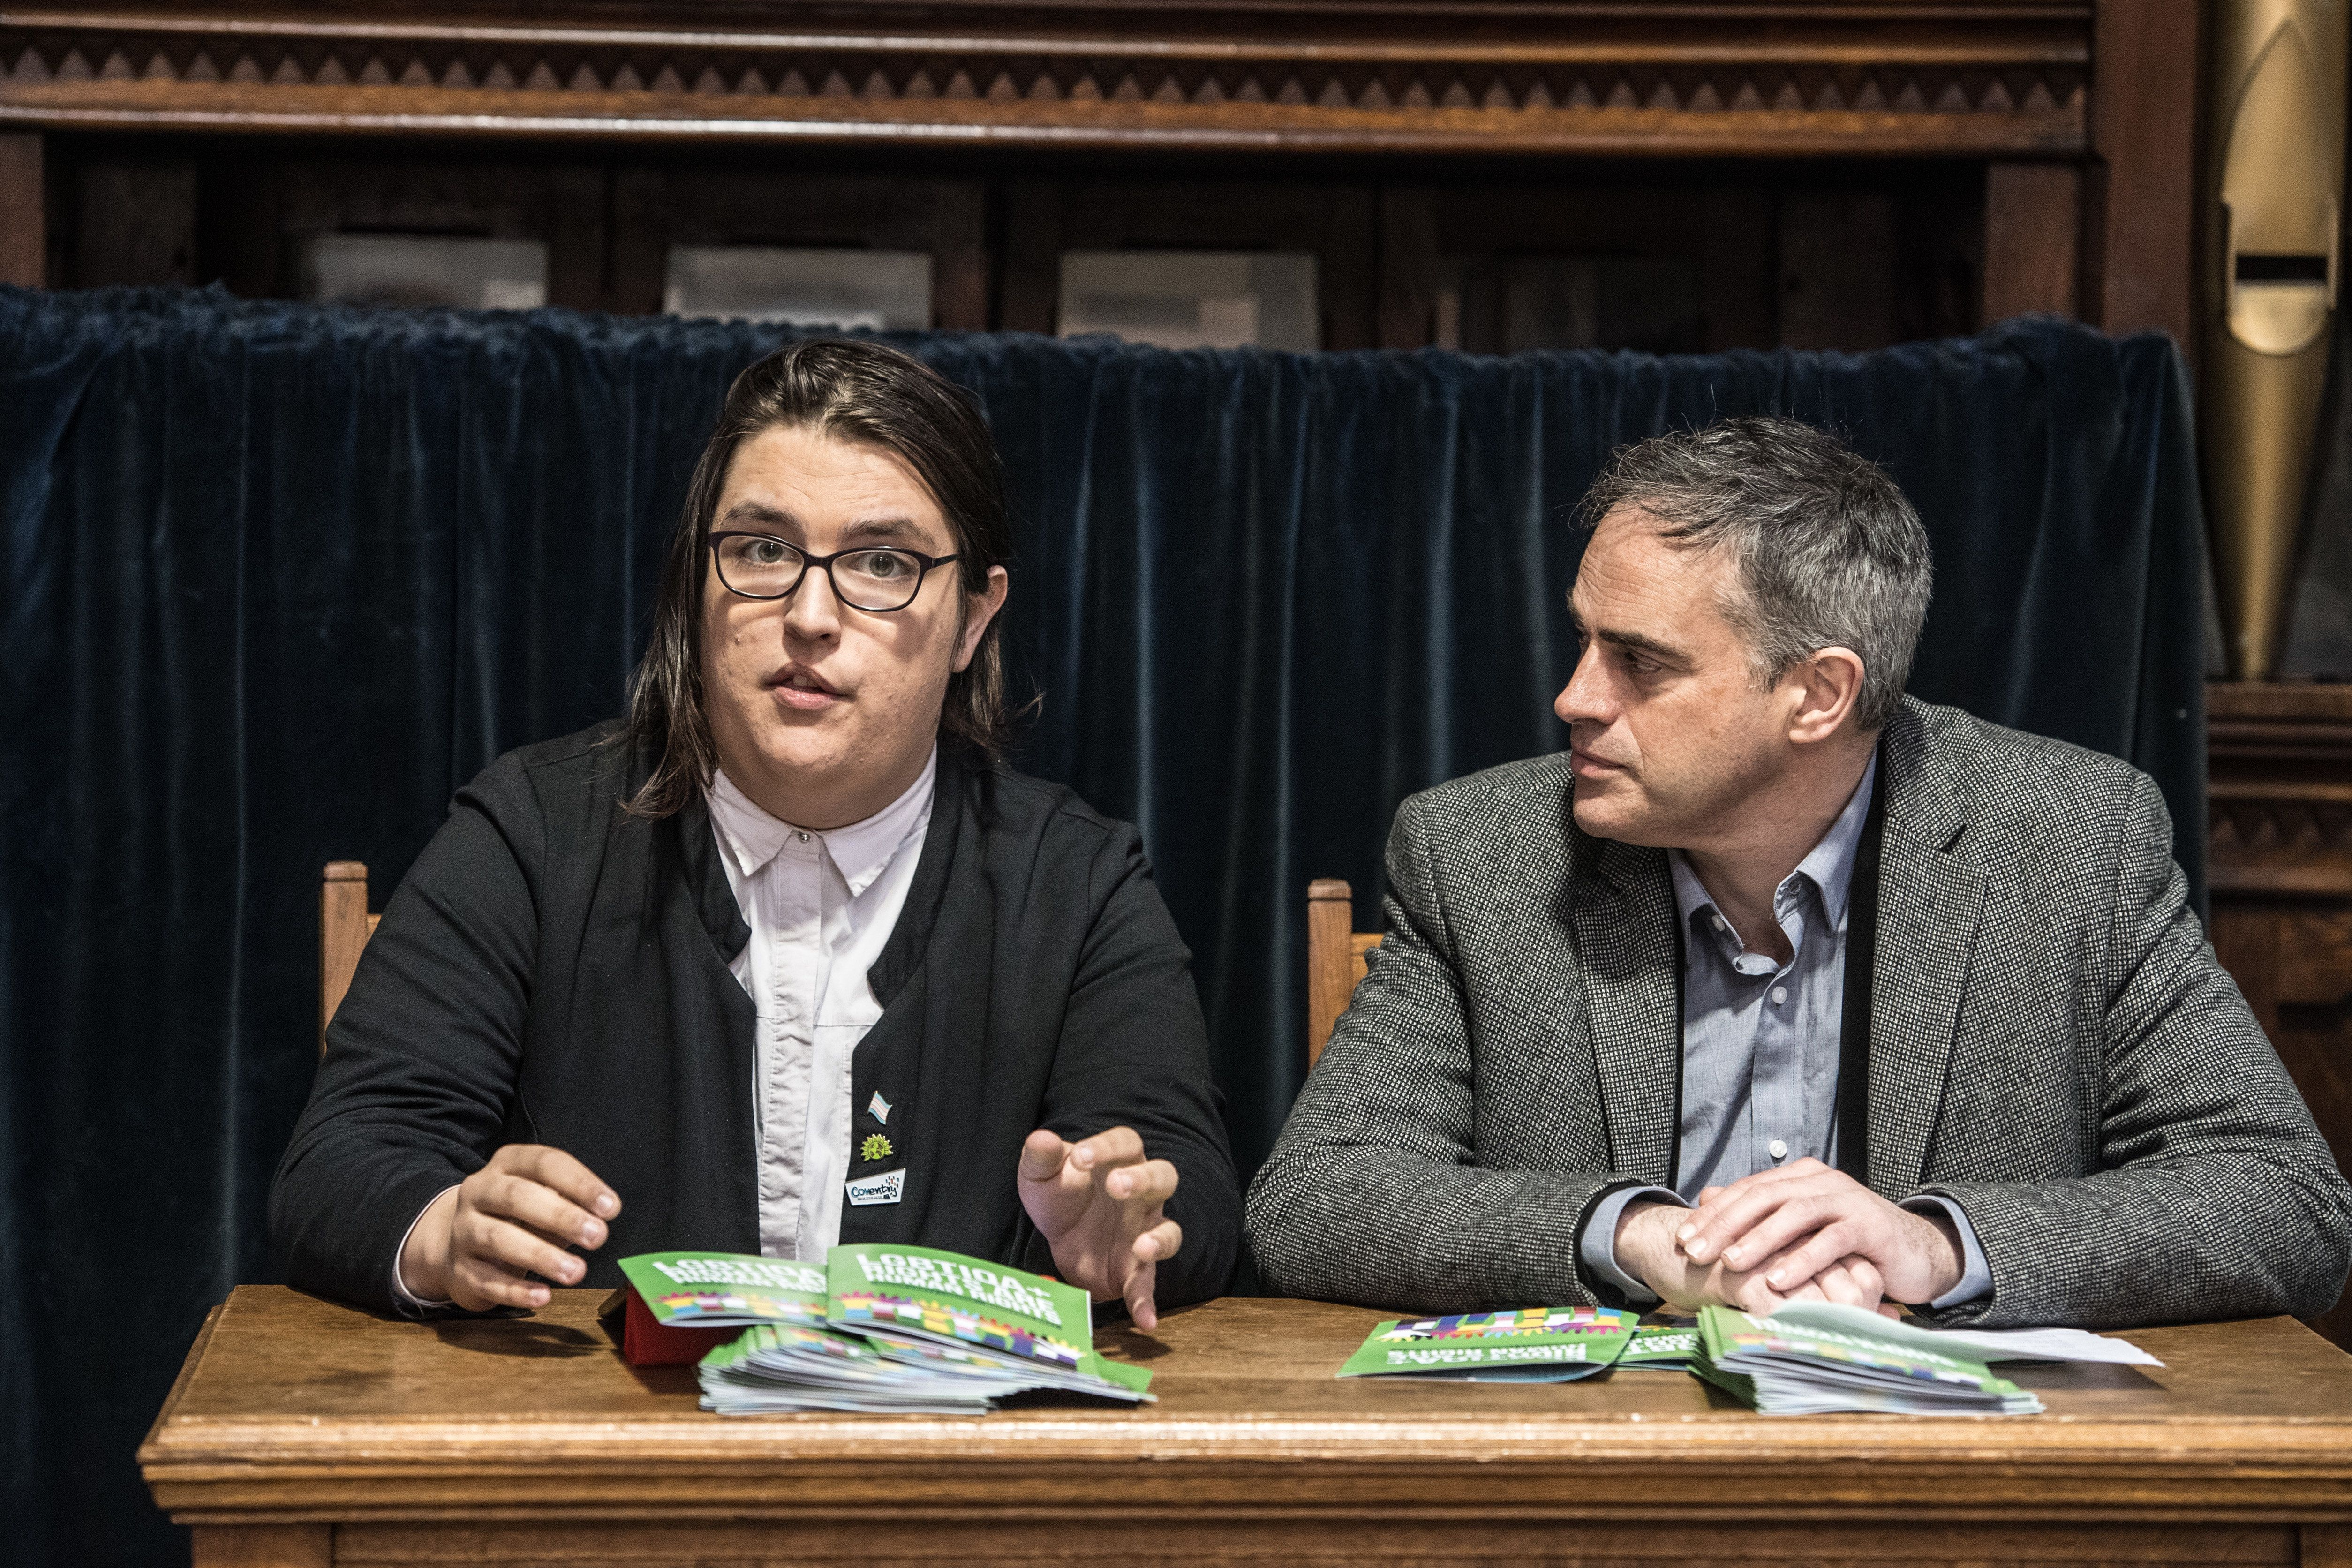 The Green Party has suspended Aimee Challenor